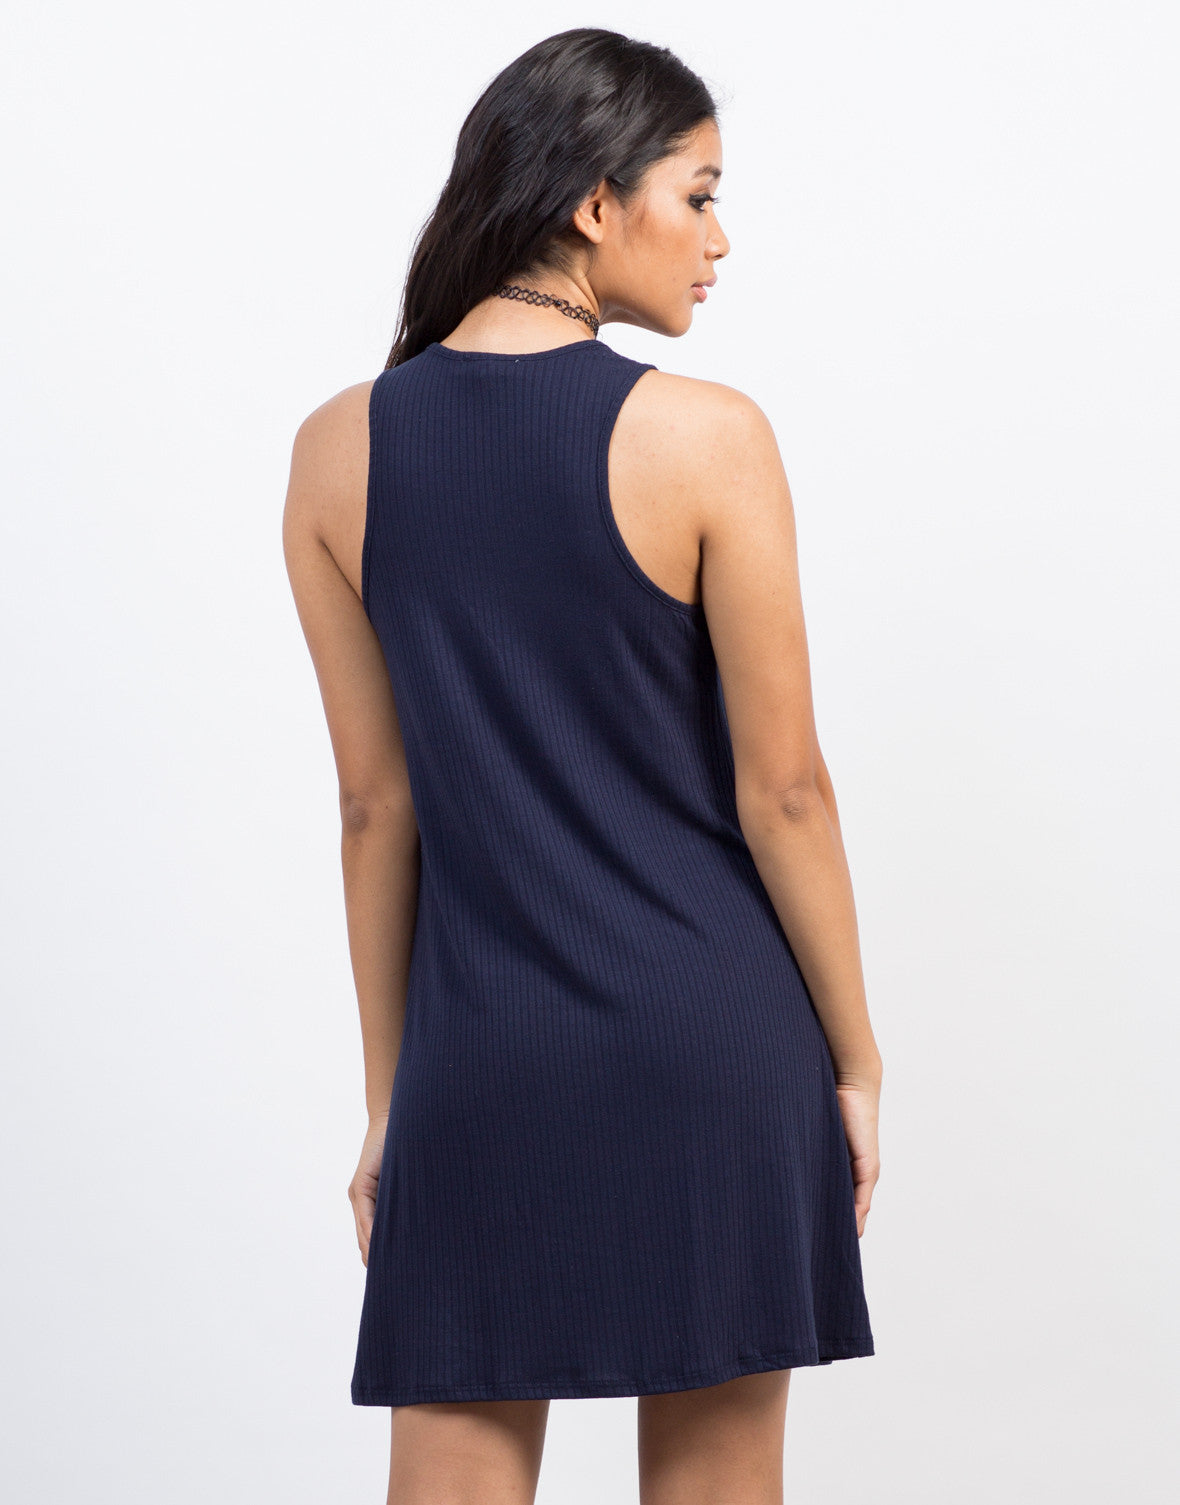 Back View of Ribbed Flowy Tank Dress